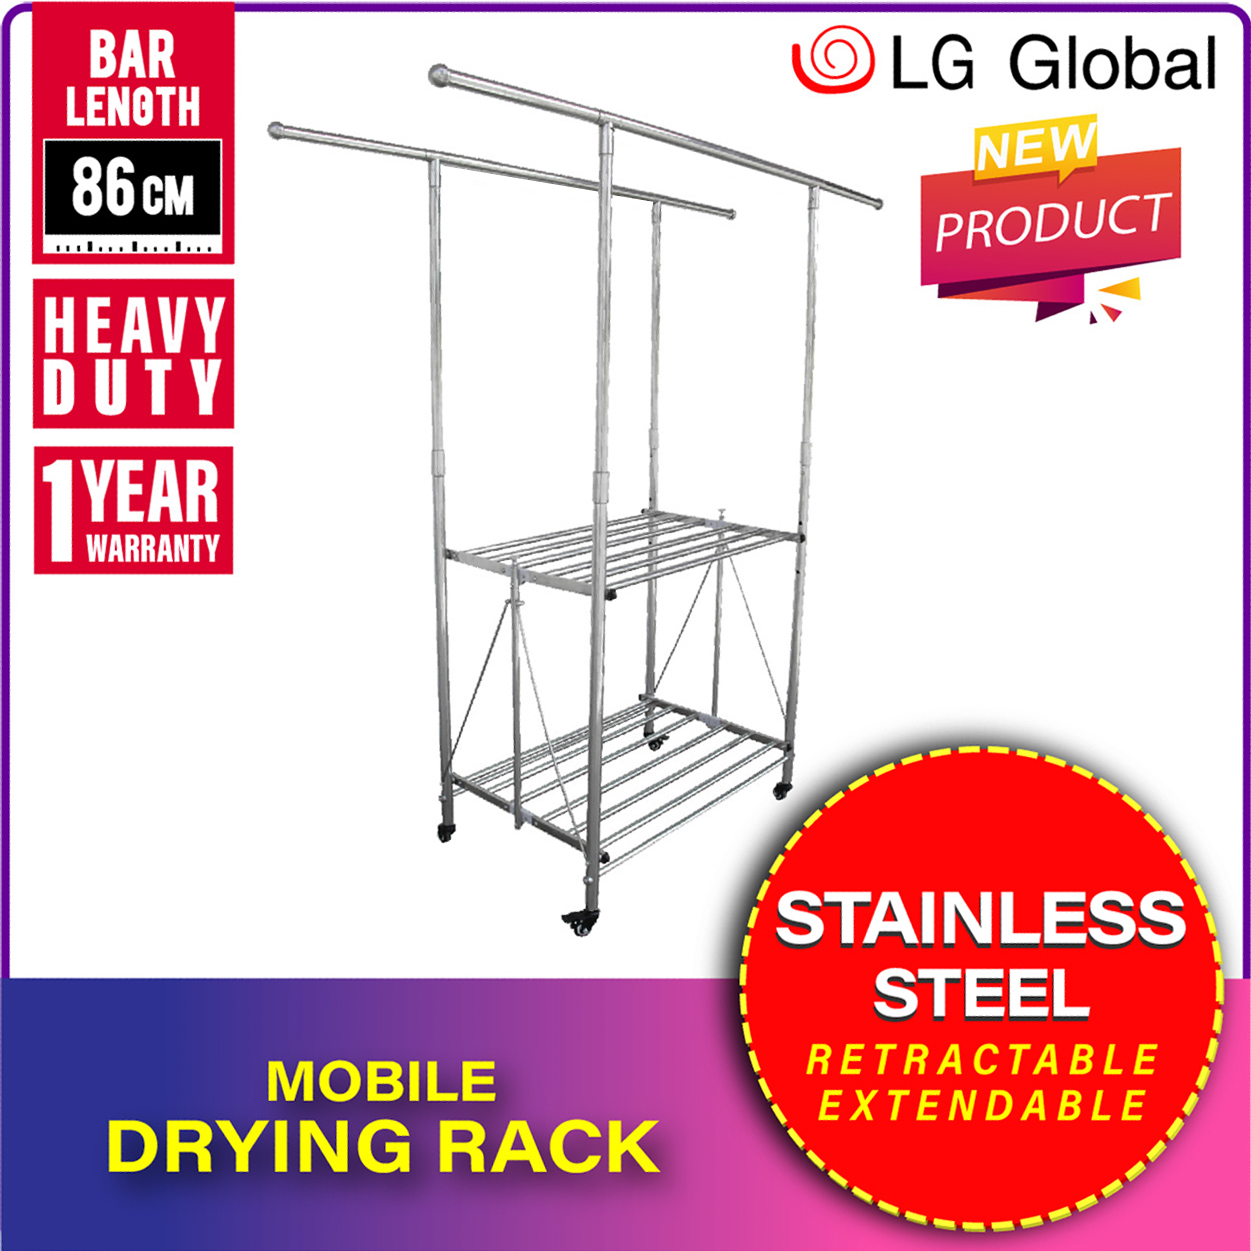 lg988 lg global mobile clothes drying rack mobile cloth laundry rack